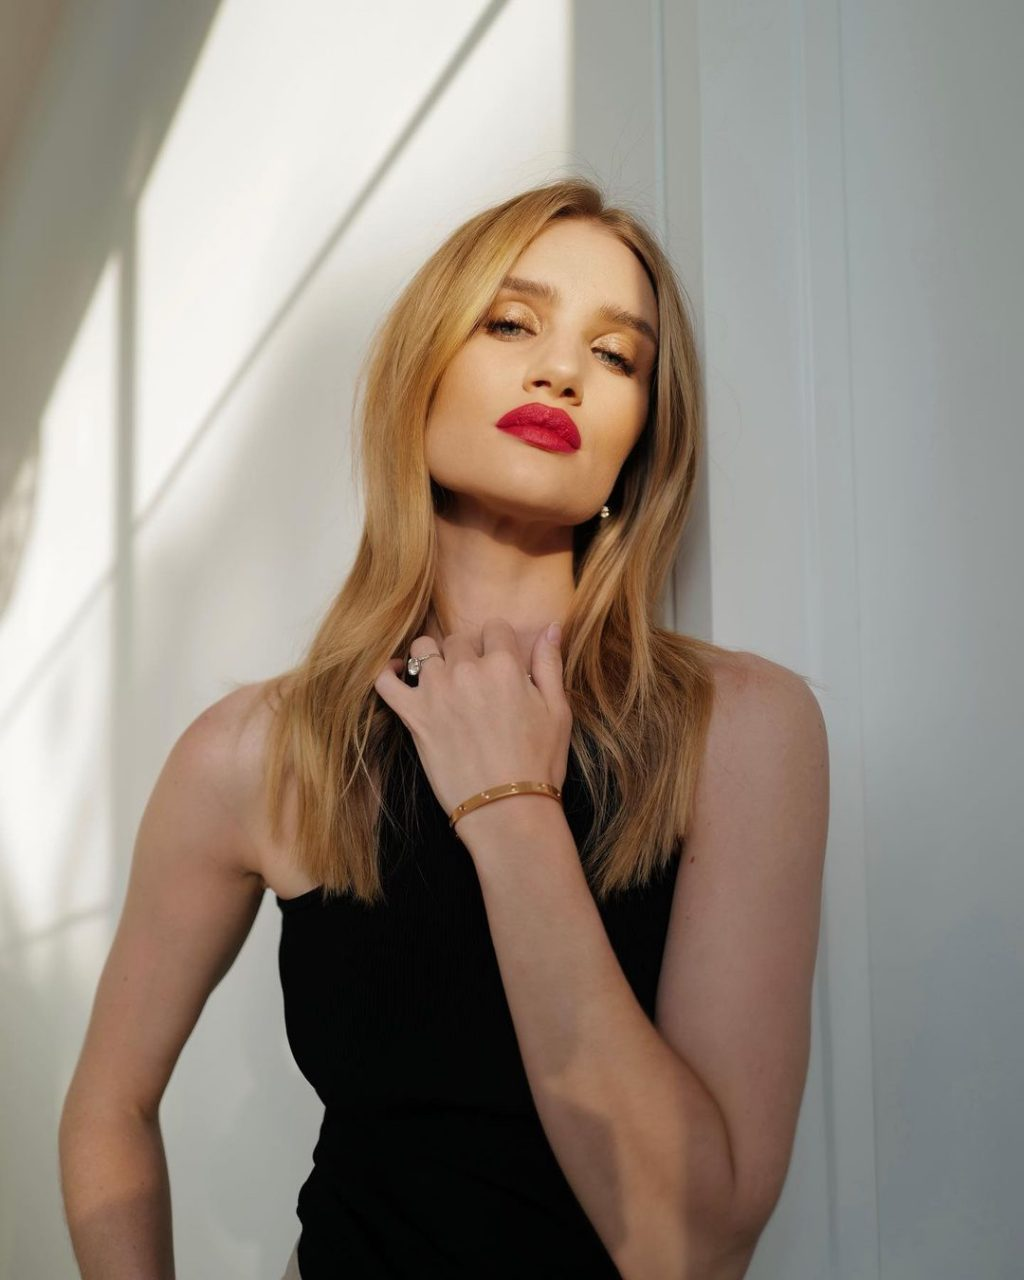 This Just In: Rosie Huntington-Whiteley to Launch Clean Cosmetics Brand